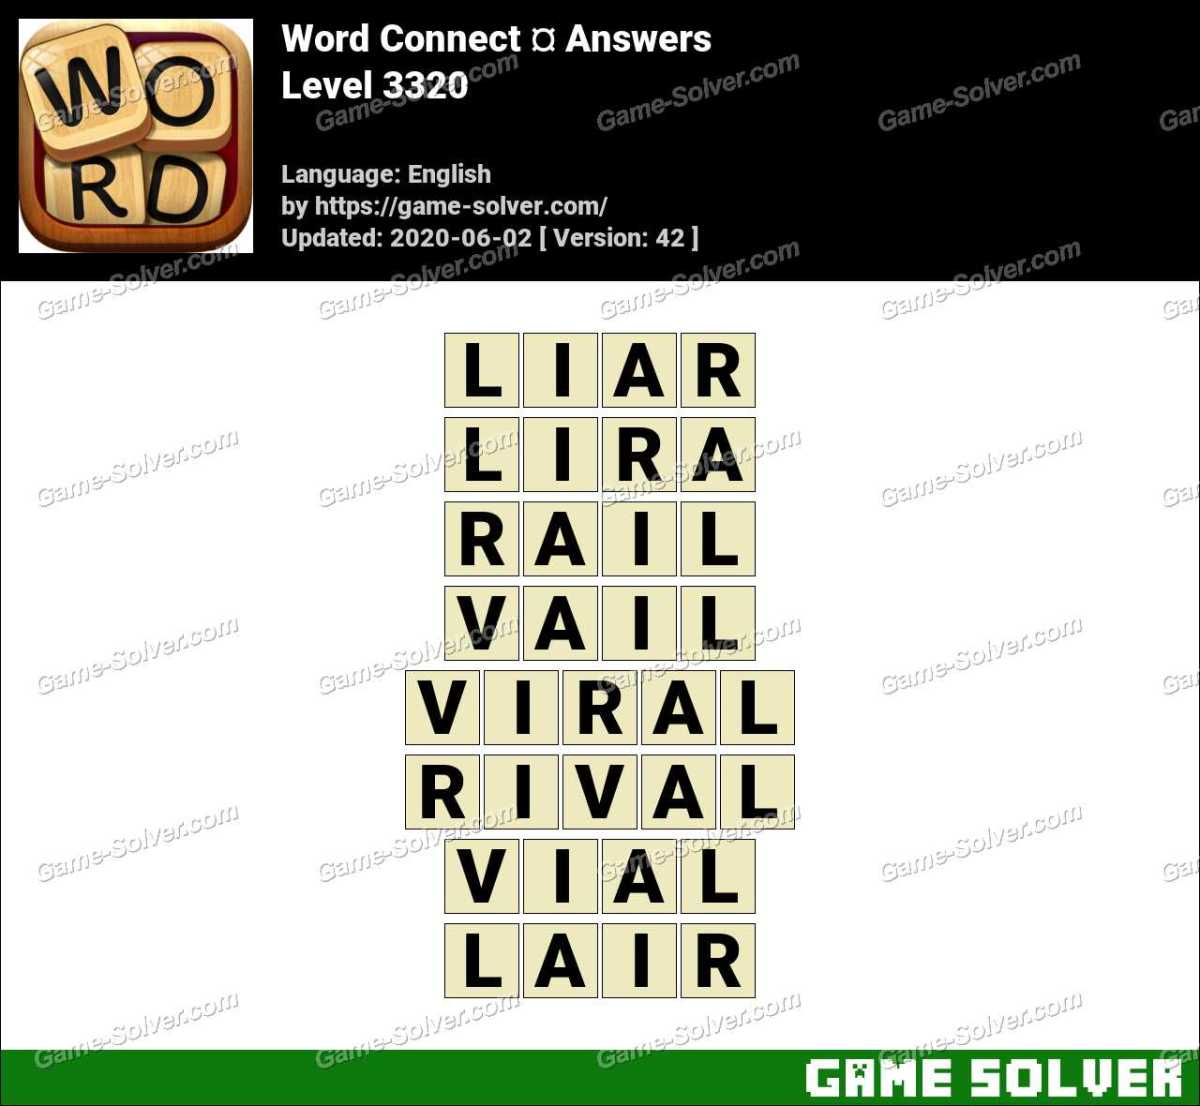 Word Connect Level 3320 Answers